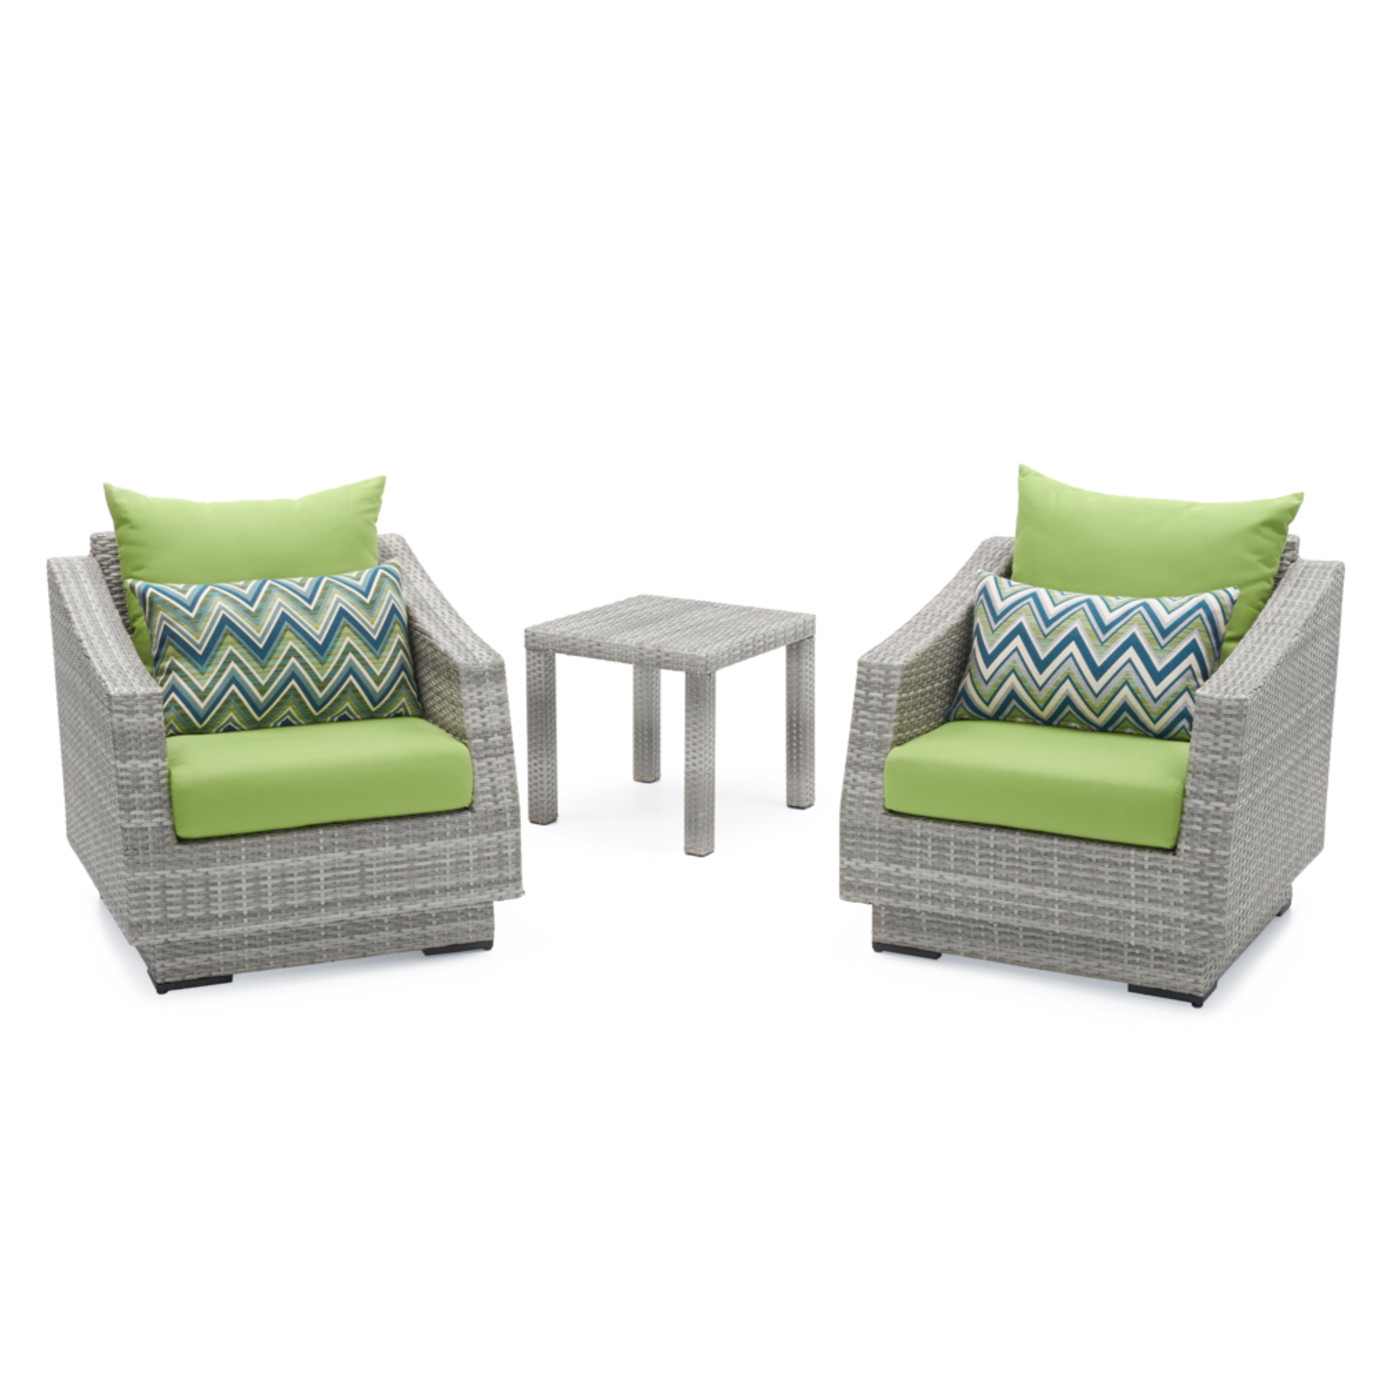 Cannes™ Club Chairs and Side Table - Ginkgo Green